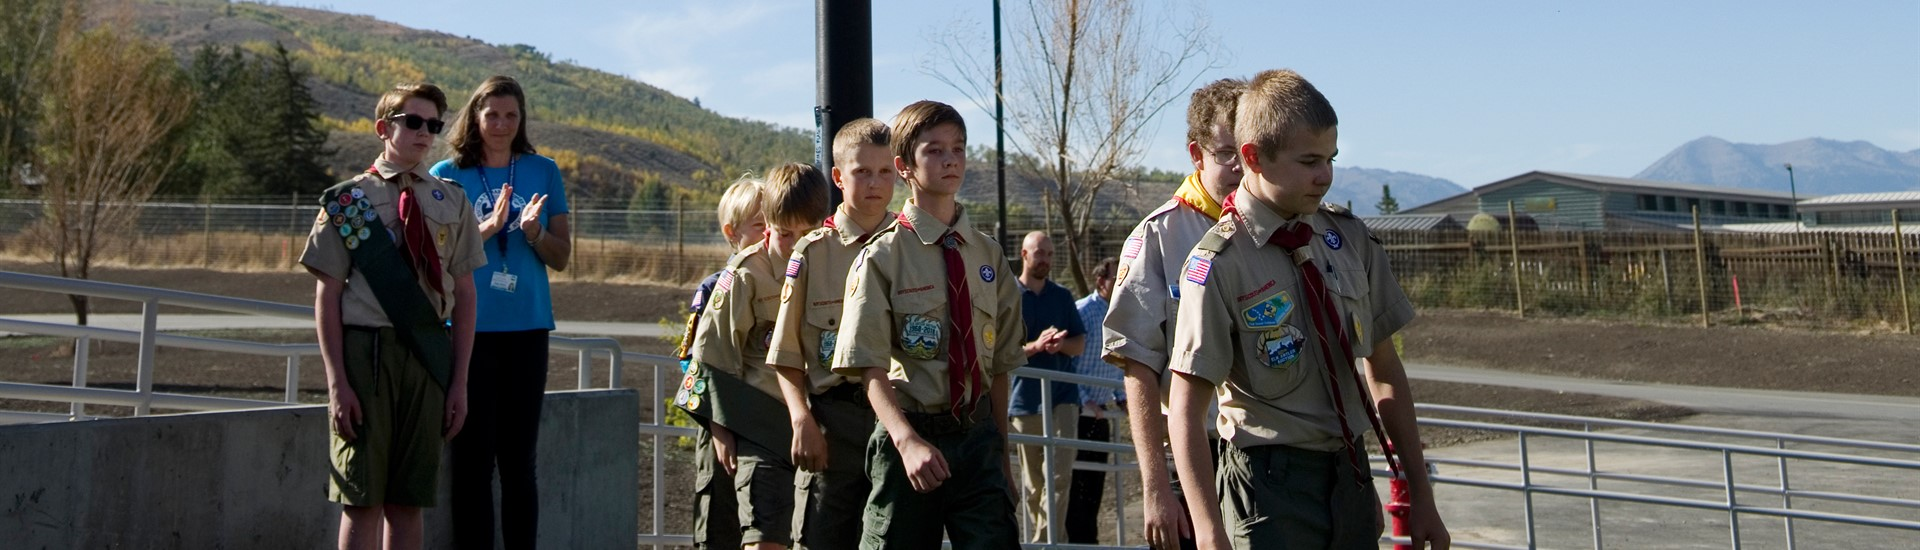 Boy scouts present flags at Munger Mountain ribbon cutting